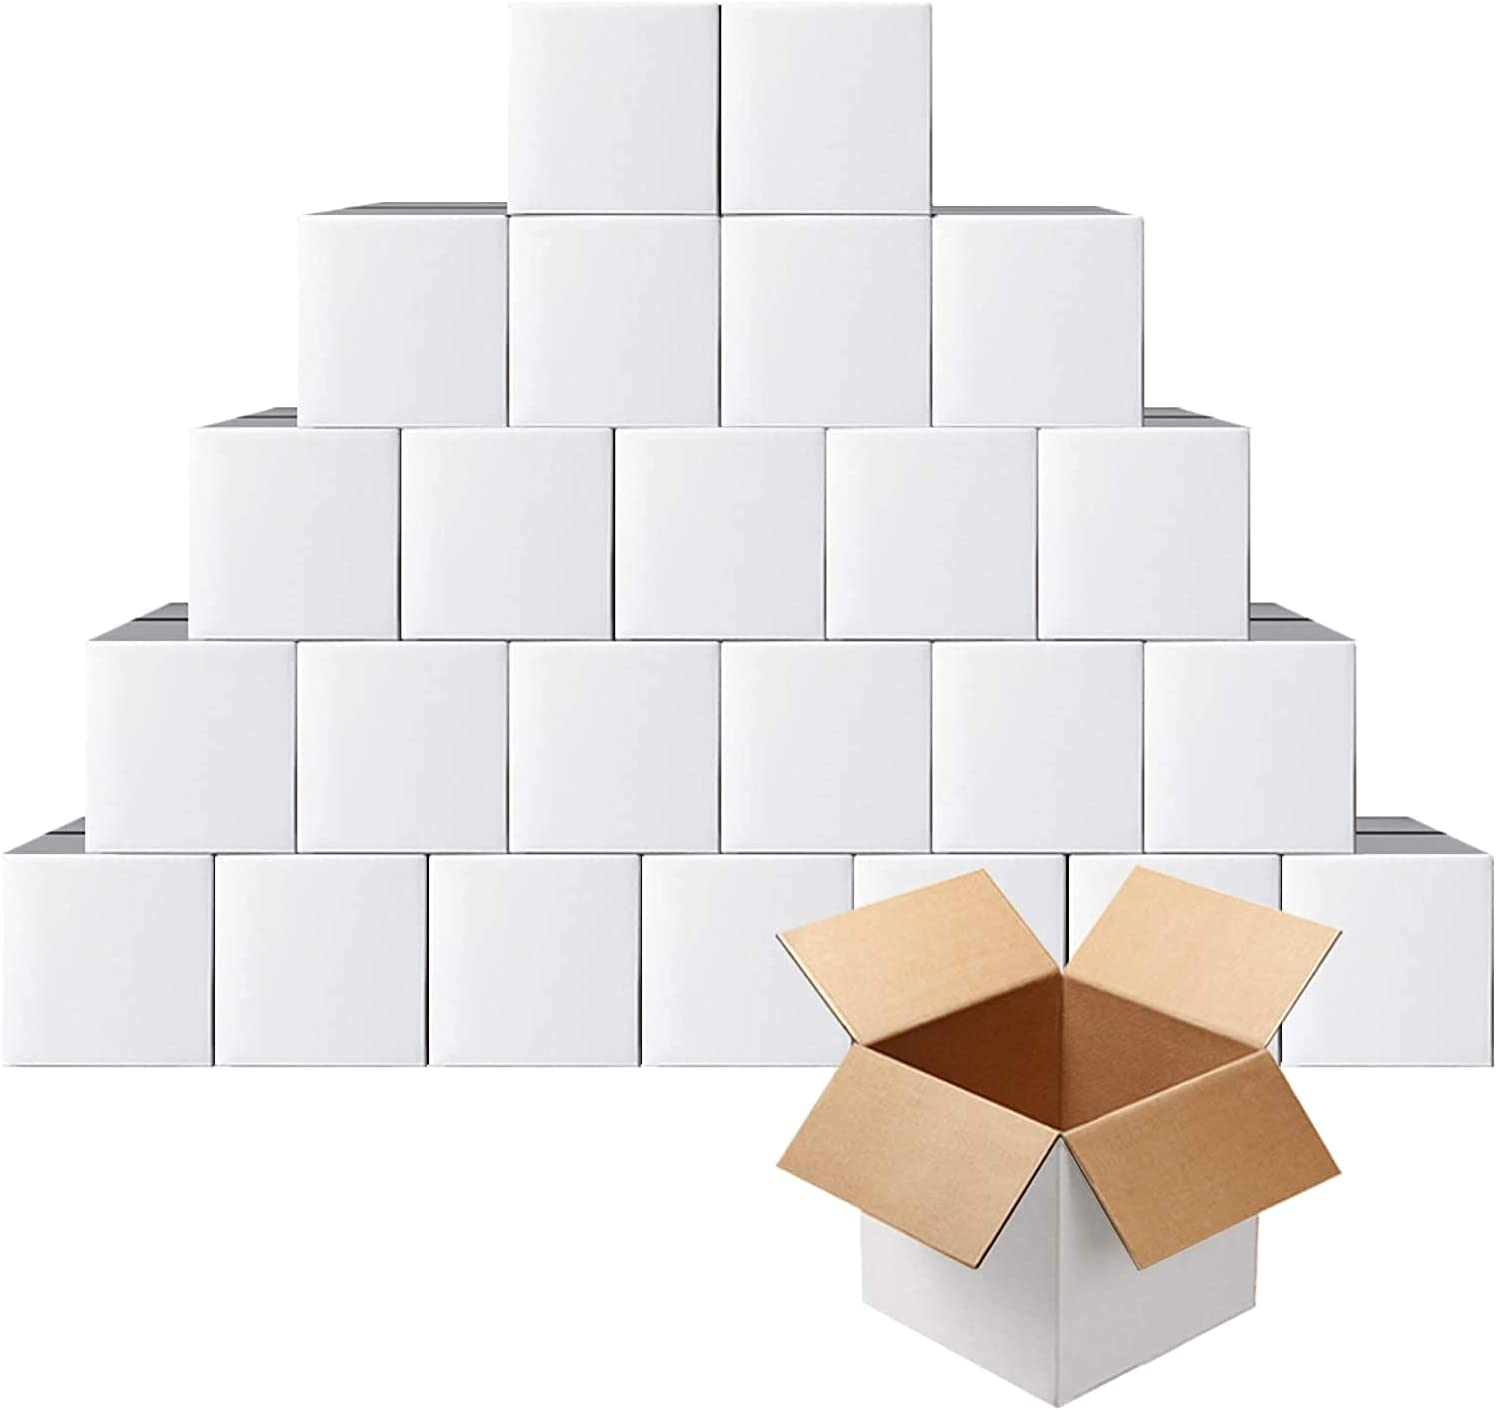 SKEMIX 25 Boxes Ranking integrated 1st place Ranking TOP10 Cardboard Box Gift Shipping Mailers Pack Cartons